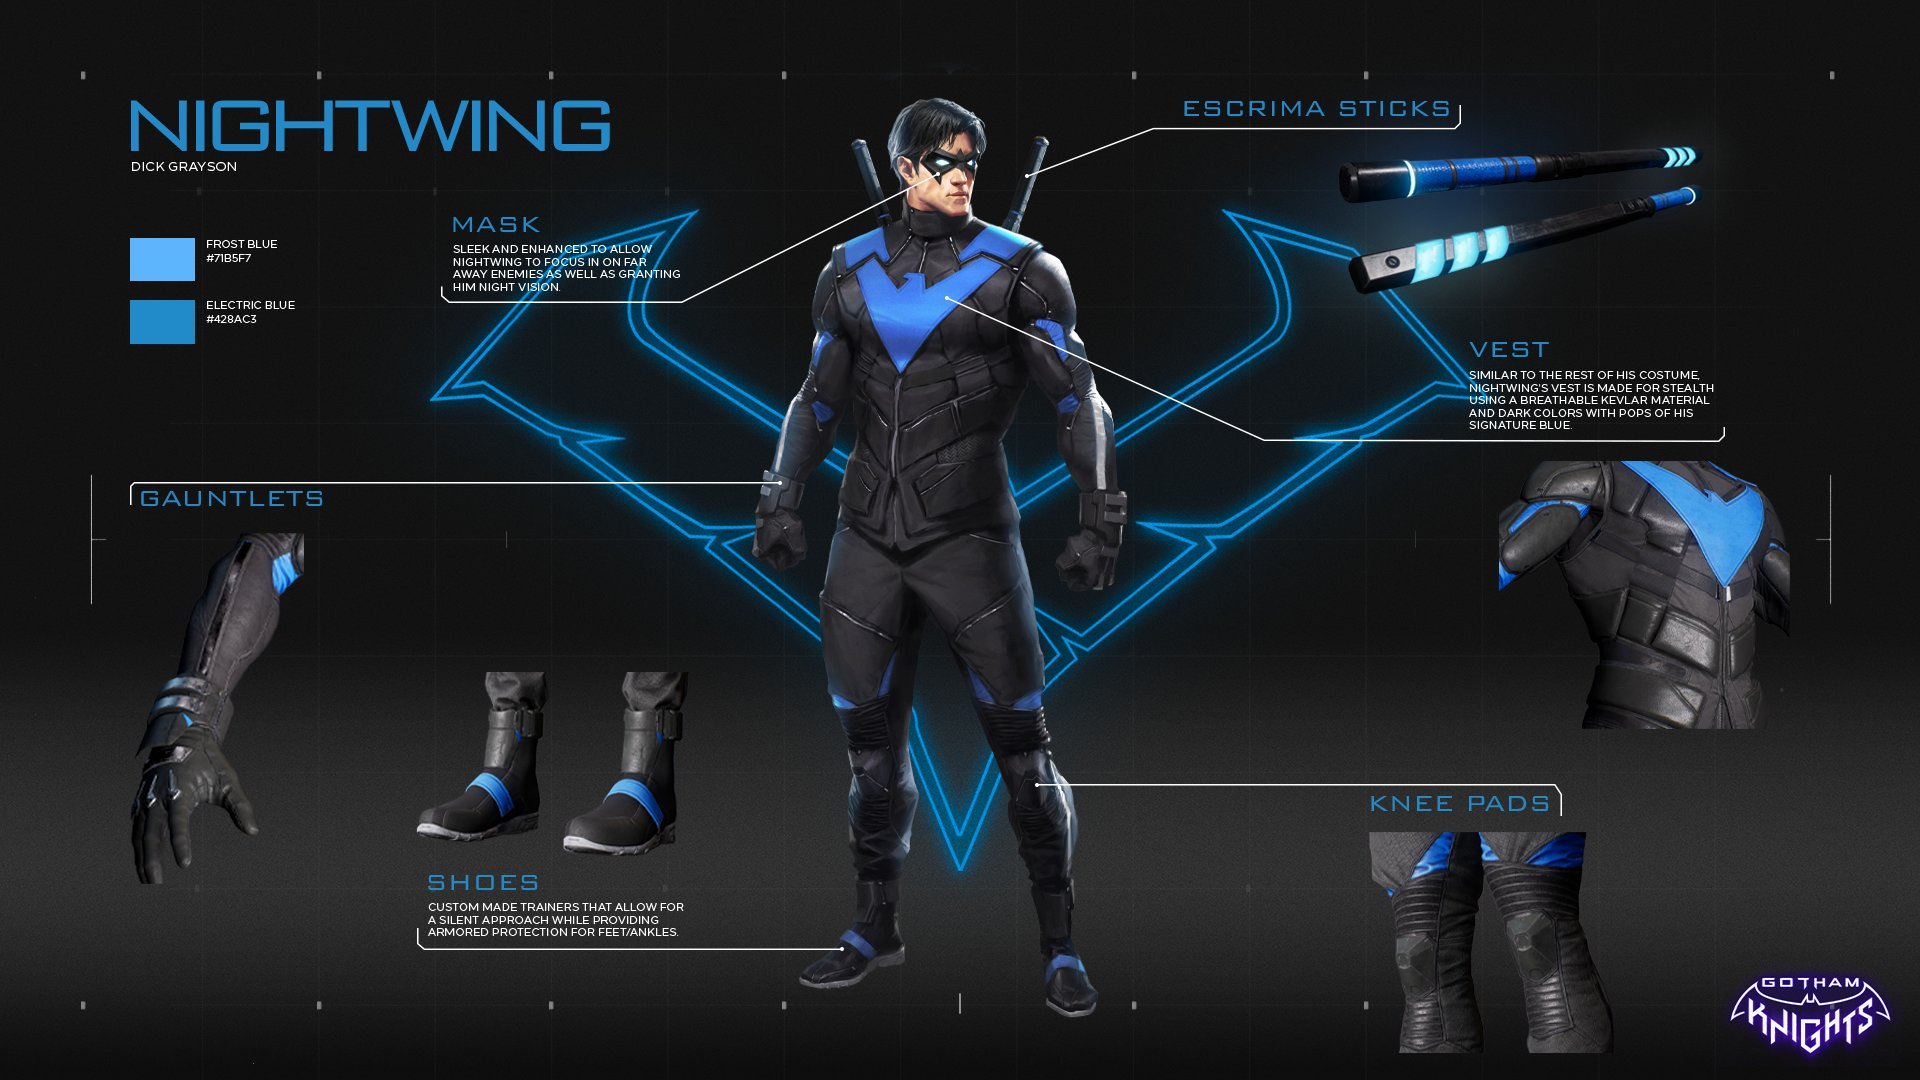 Gotham Knights Nightwing outfit breakdown